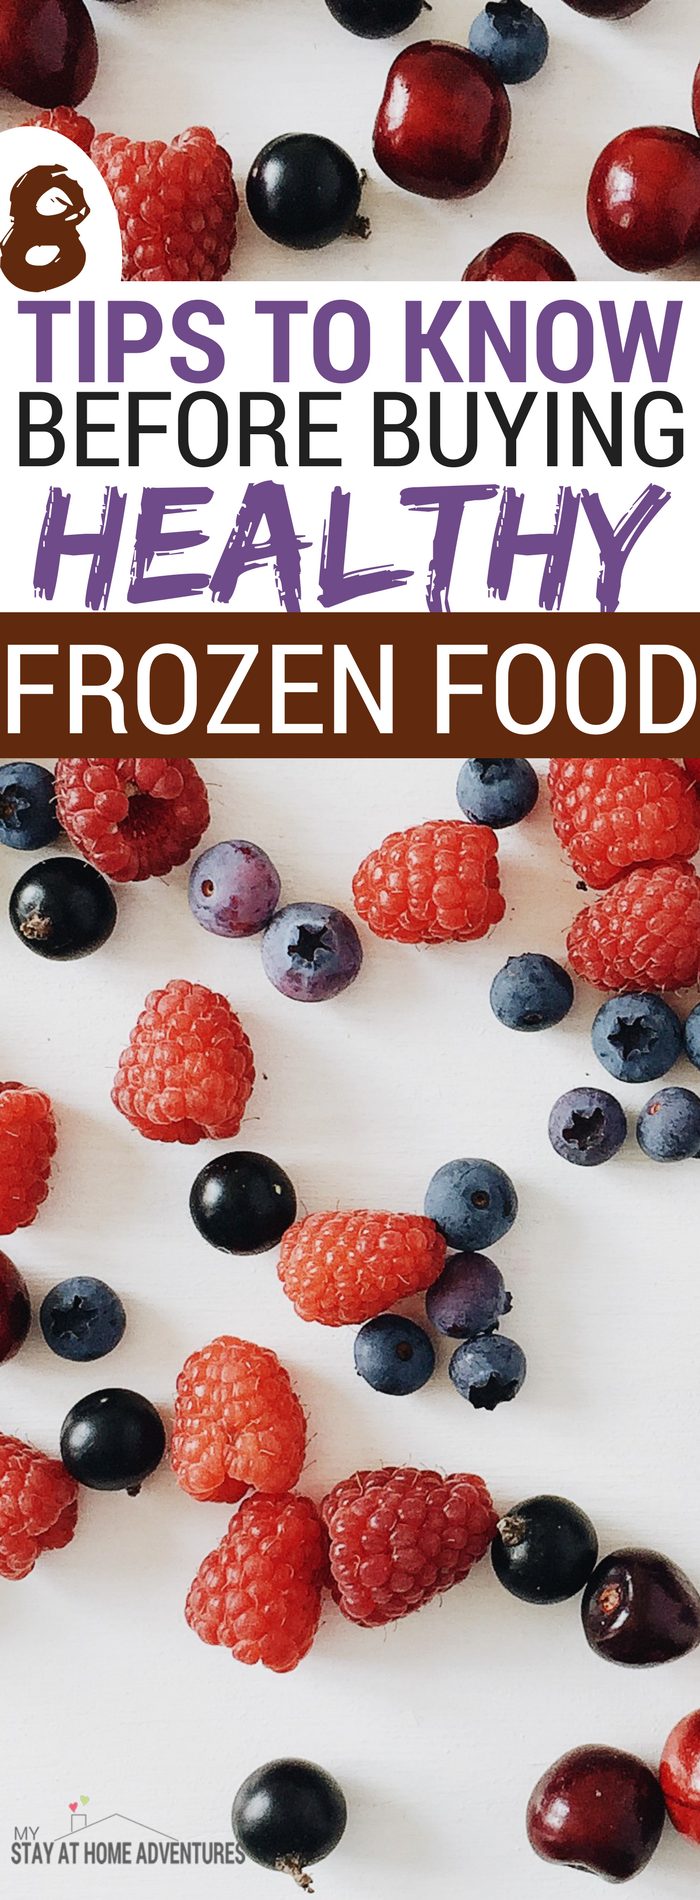 You can take advantage of how affordable healthy frozen food is but the trick is finding it. Many people don't know how to shop for healthy frozen food and some don't even know about these tips at all. Learn what they are and how you can score BIG when it comes to frozen food. #Food #Tips #FrozenFoodMonth #March #Fruit #health #healthy